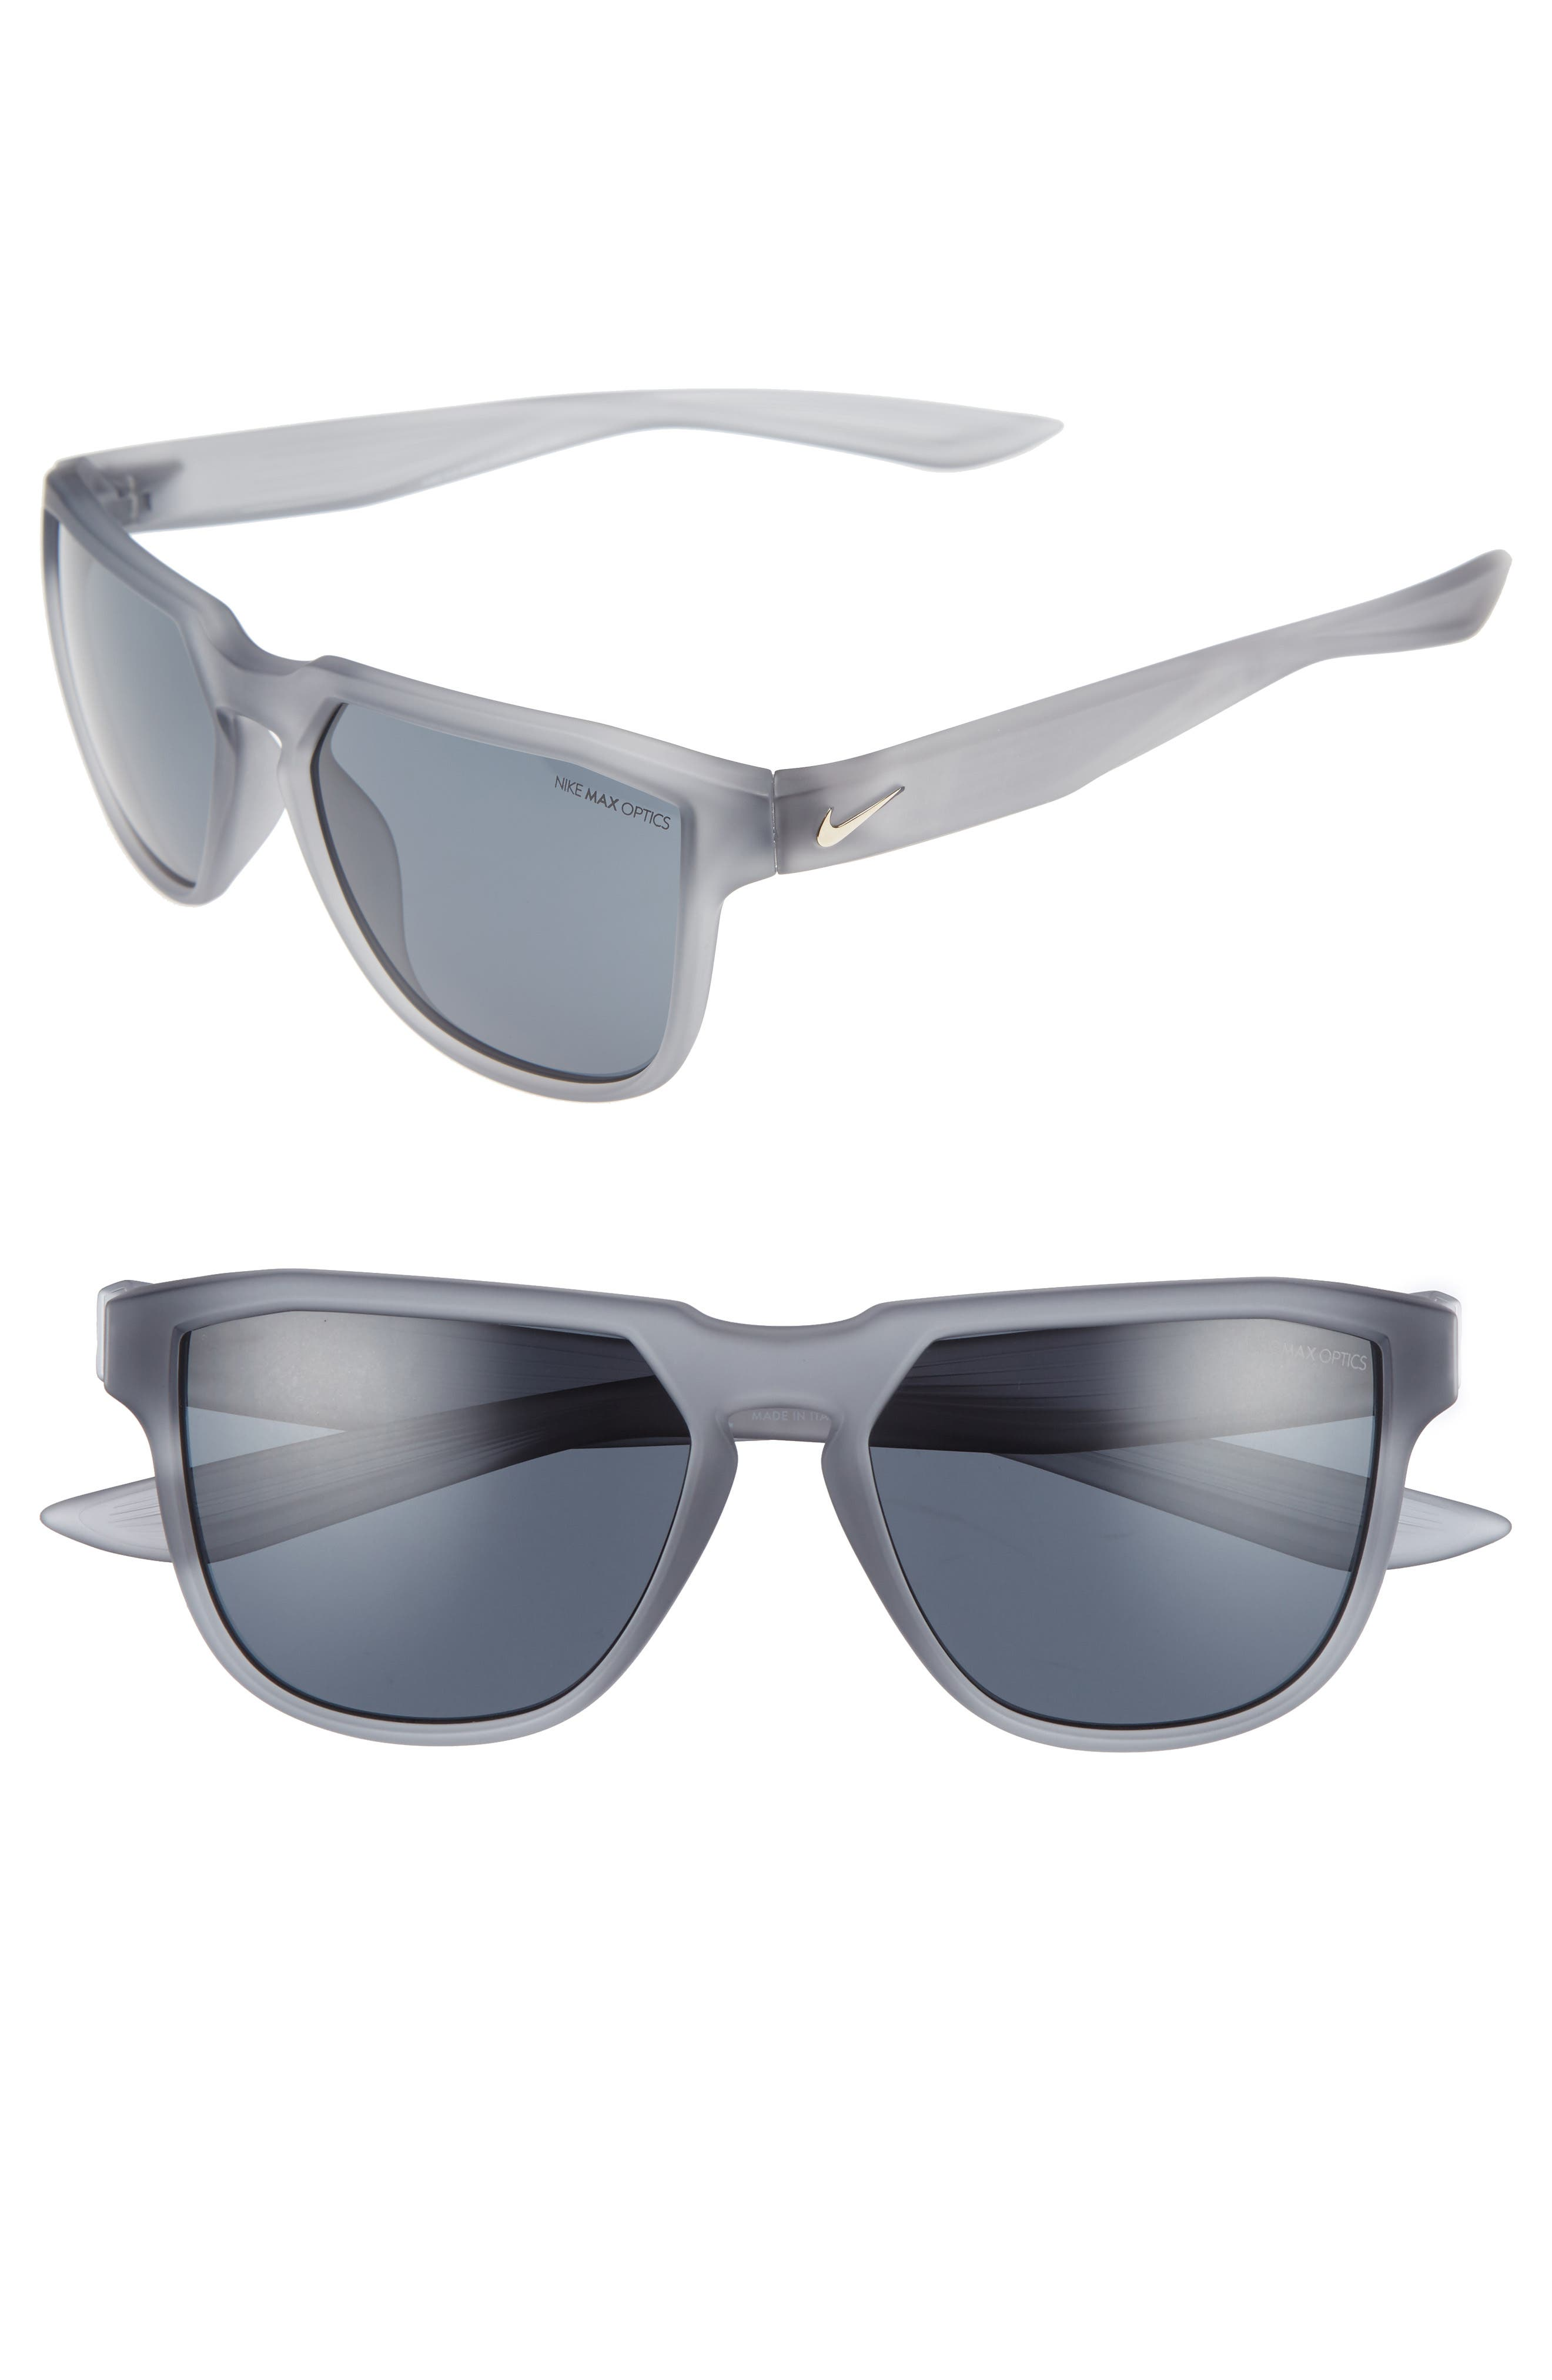 Fly Swift 57mm Sunglasses,                             Main thumbnail 1, color,                             Matte Wolf Grey/ Gold